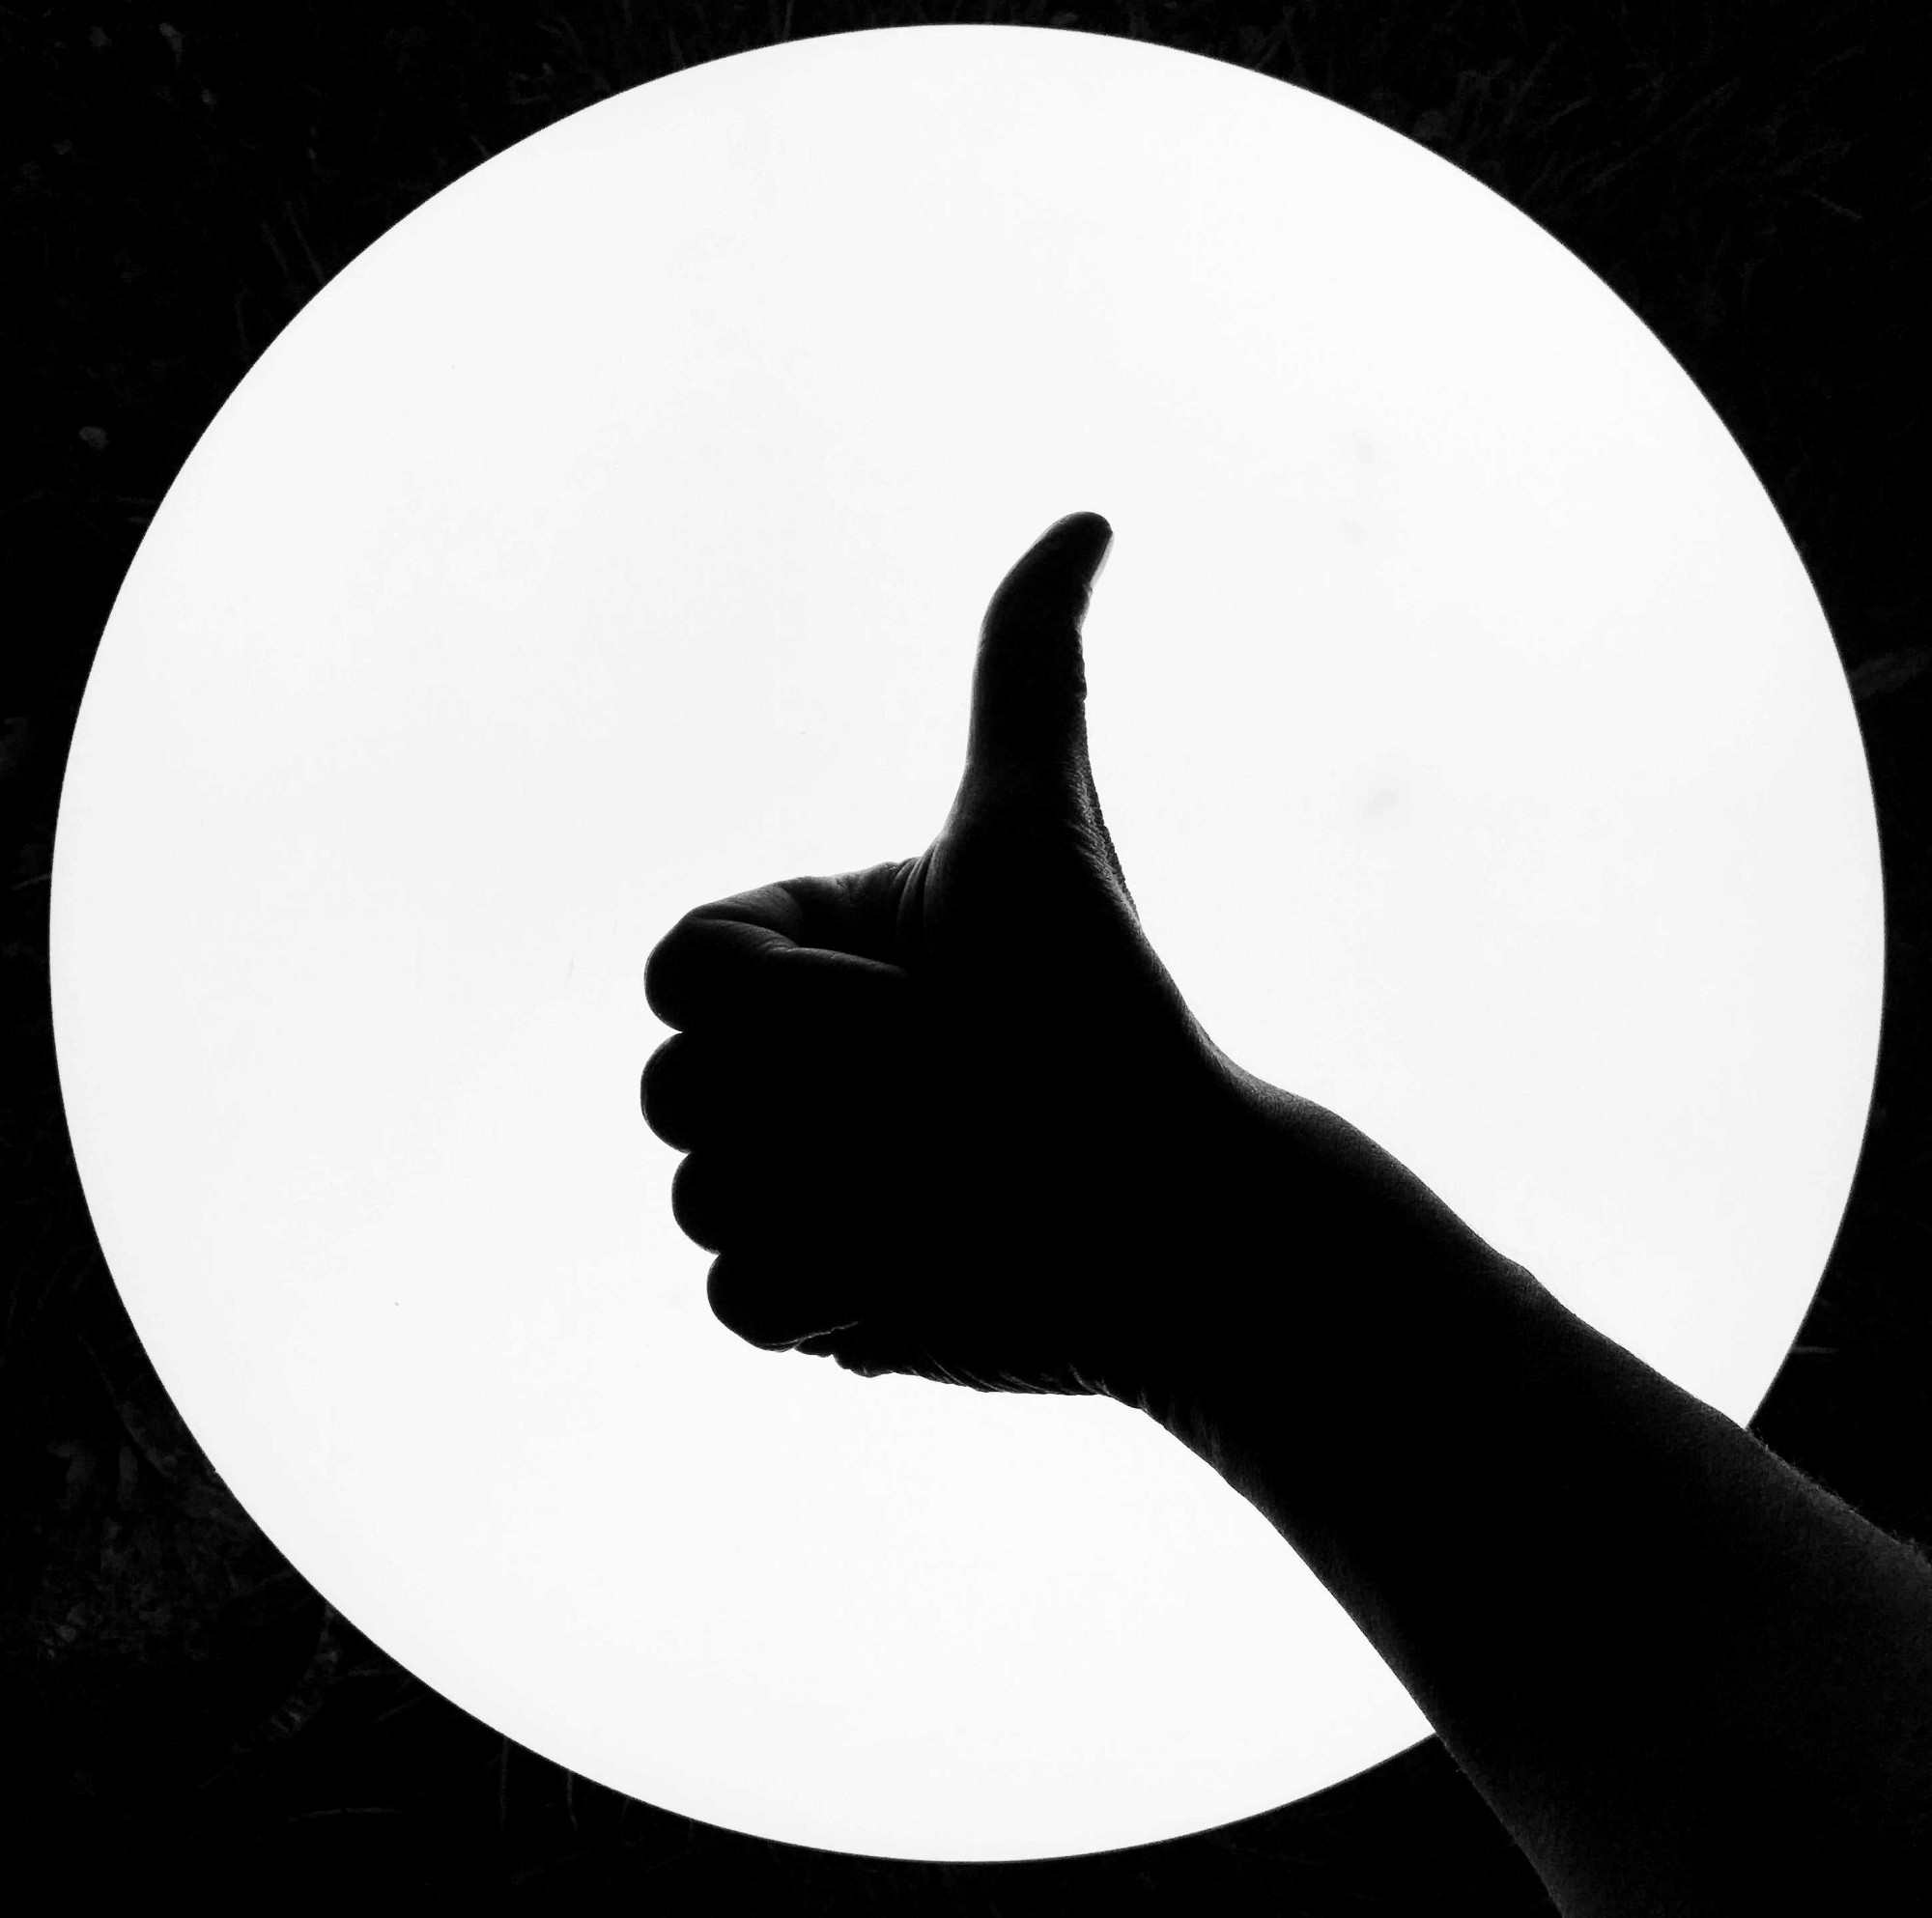 Silhouette of a man's thumb pointing up.